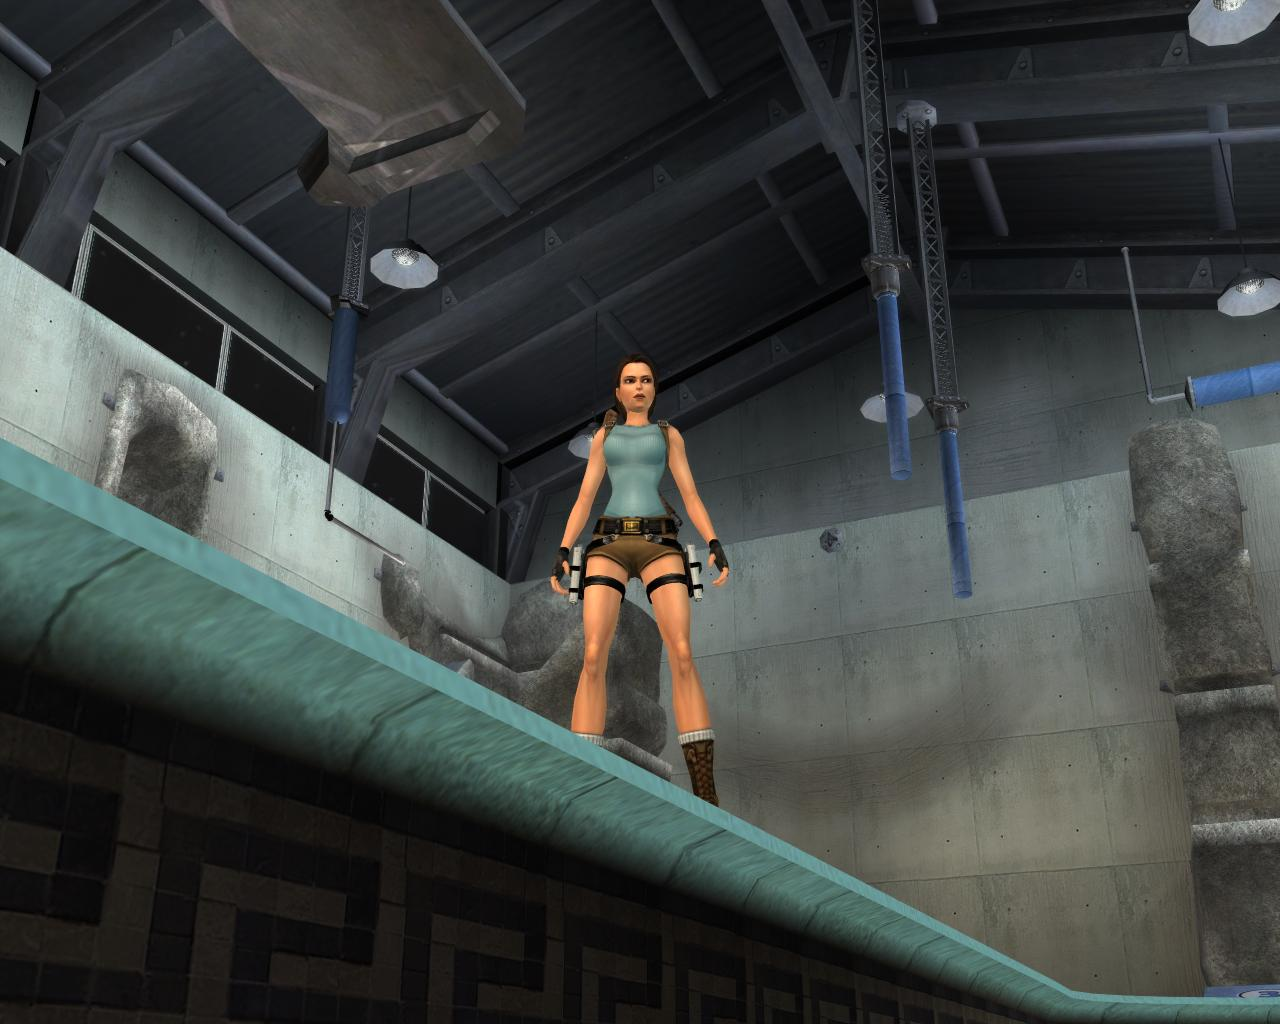 Tomb raider anniversary nute patch pron gallery